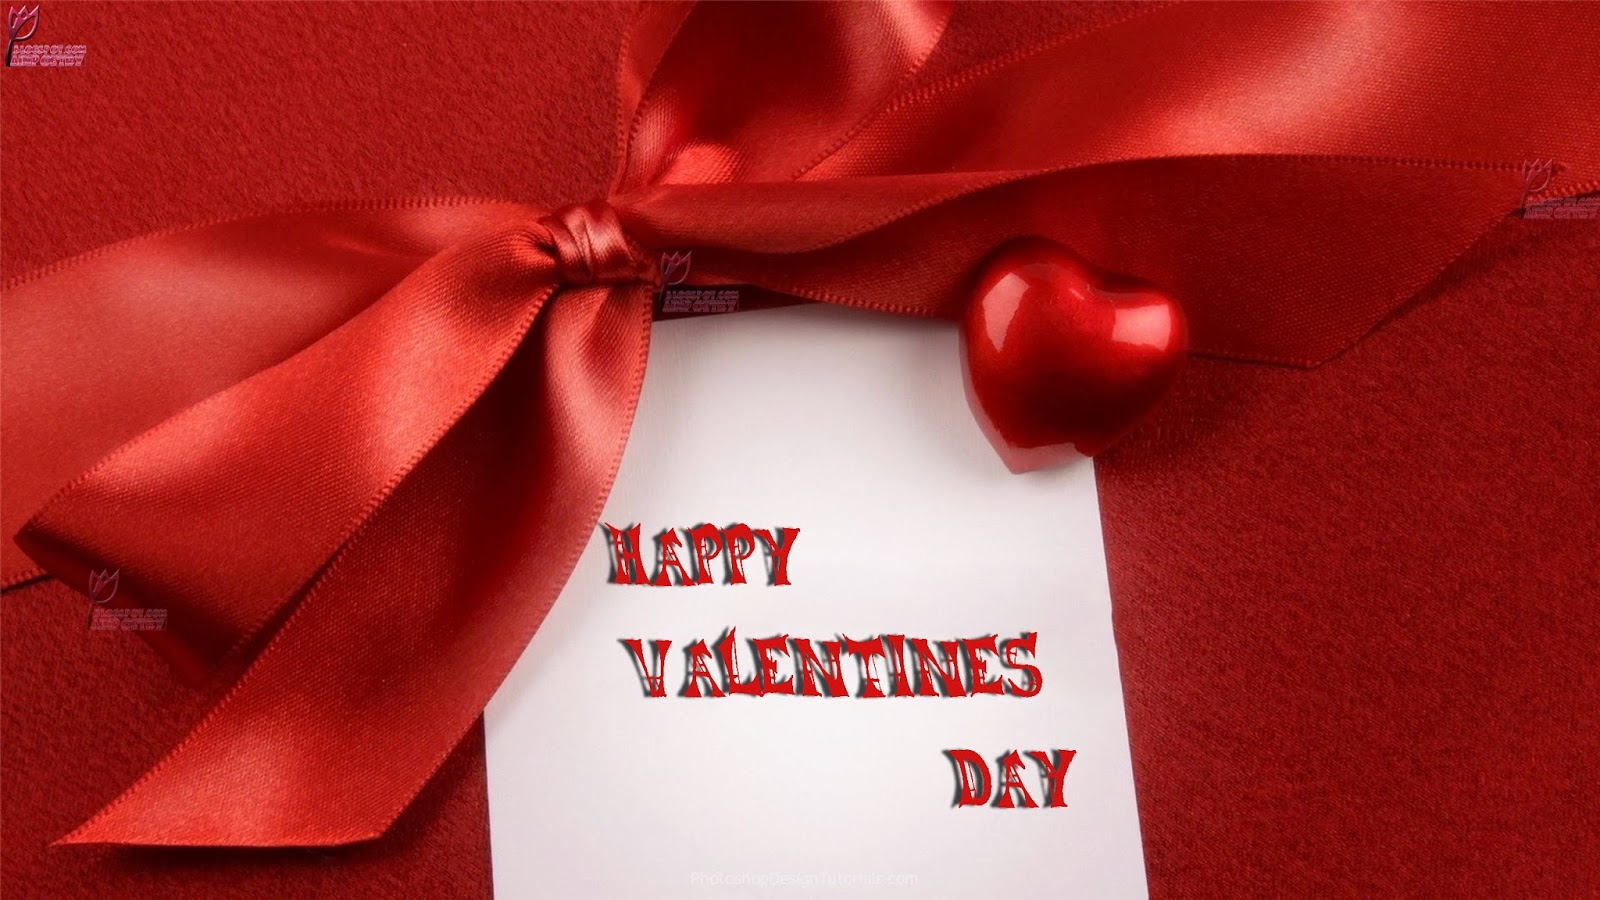 Happy-Valentines-Day-Wishes-Wallpaper-Image-HD